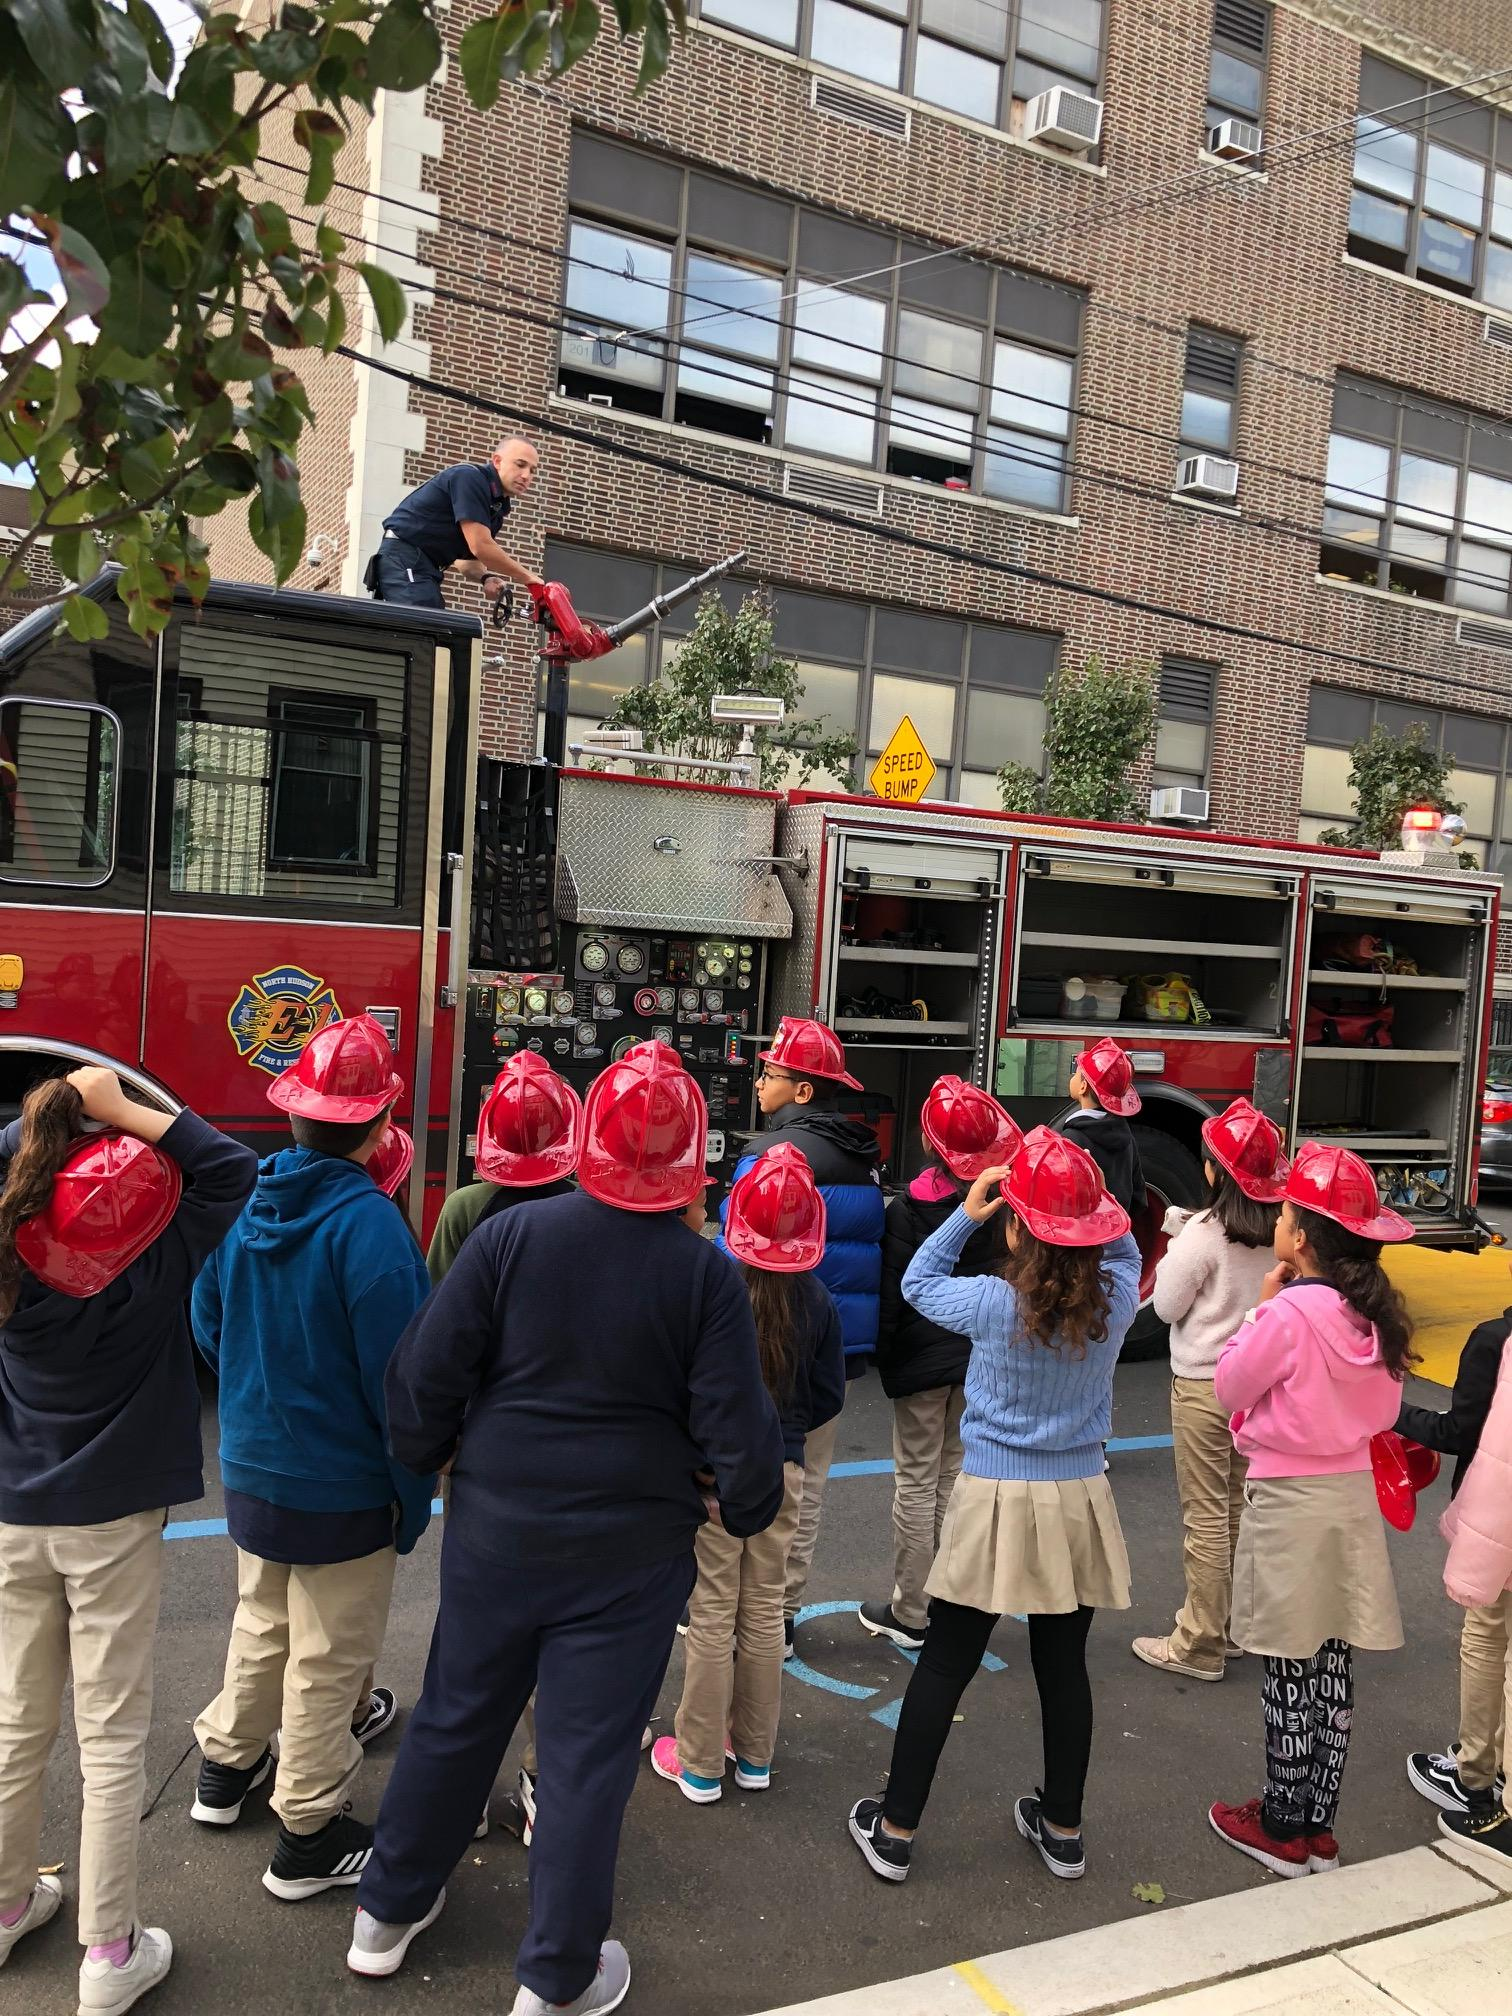 fireman showing the children the firehose on the top of the fire engine